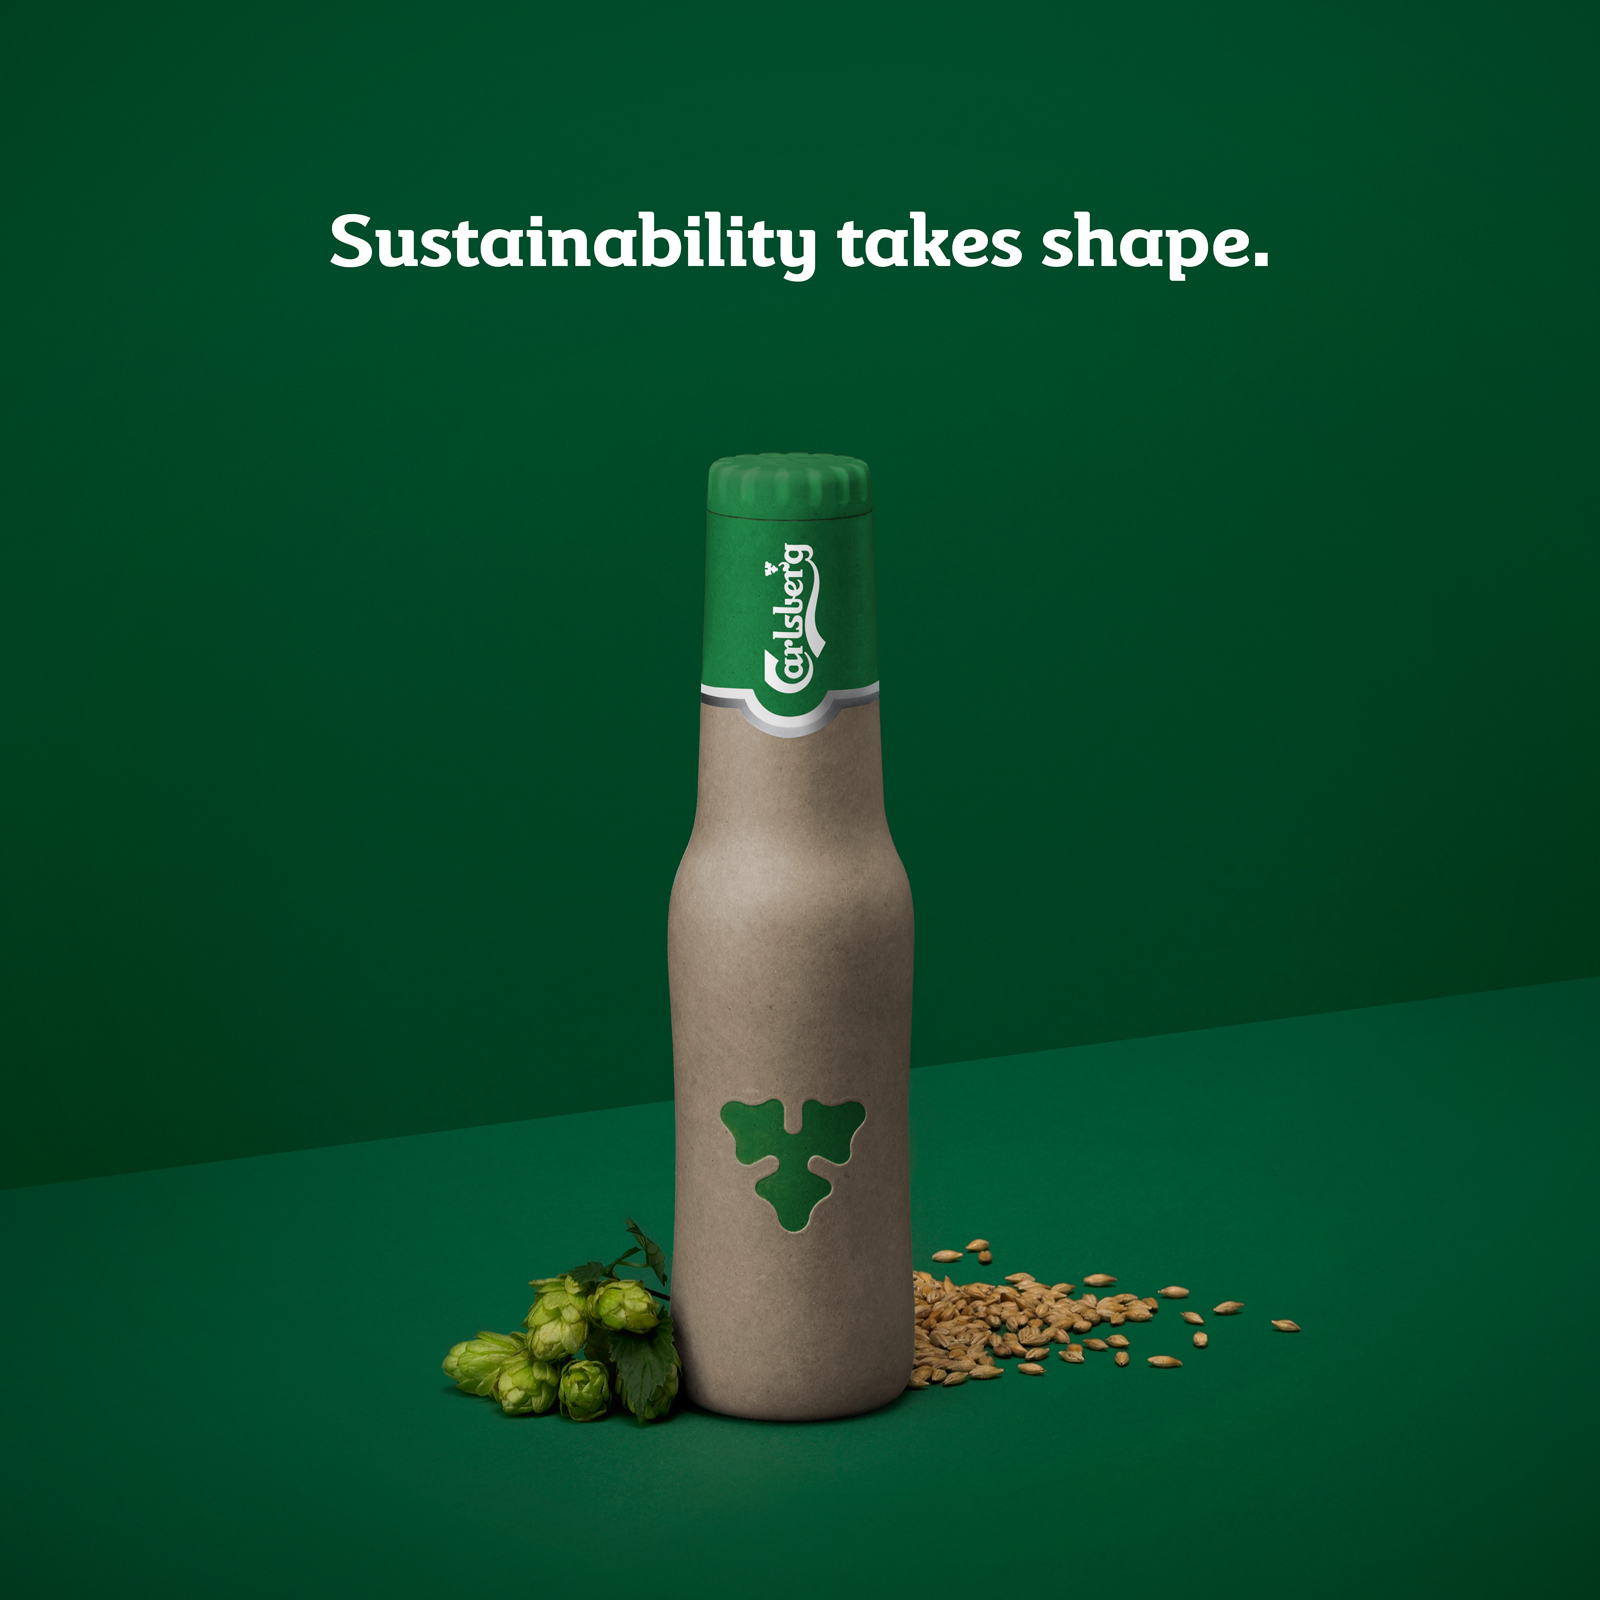 https://www.carlsberggroup.com/media/2773/gfb_sustainability_1.jpg